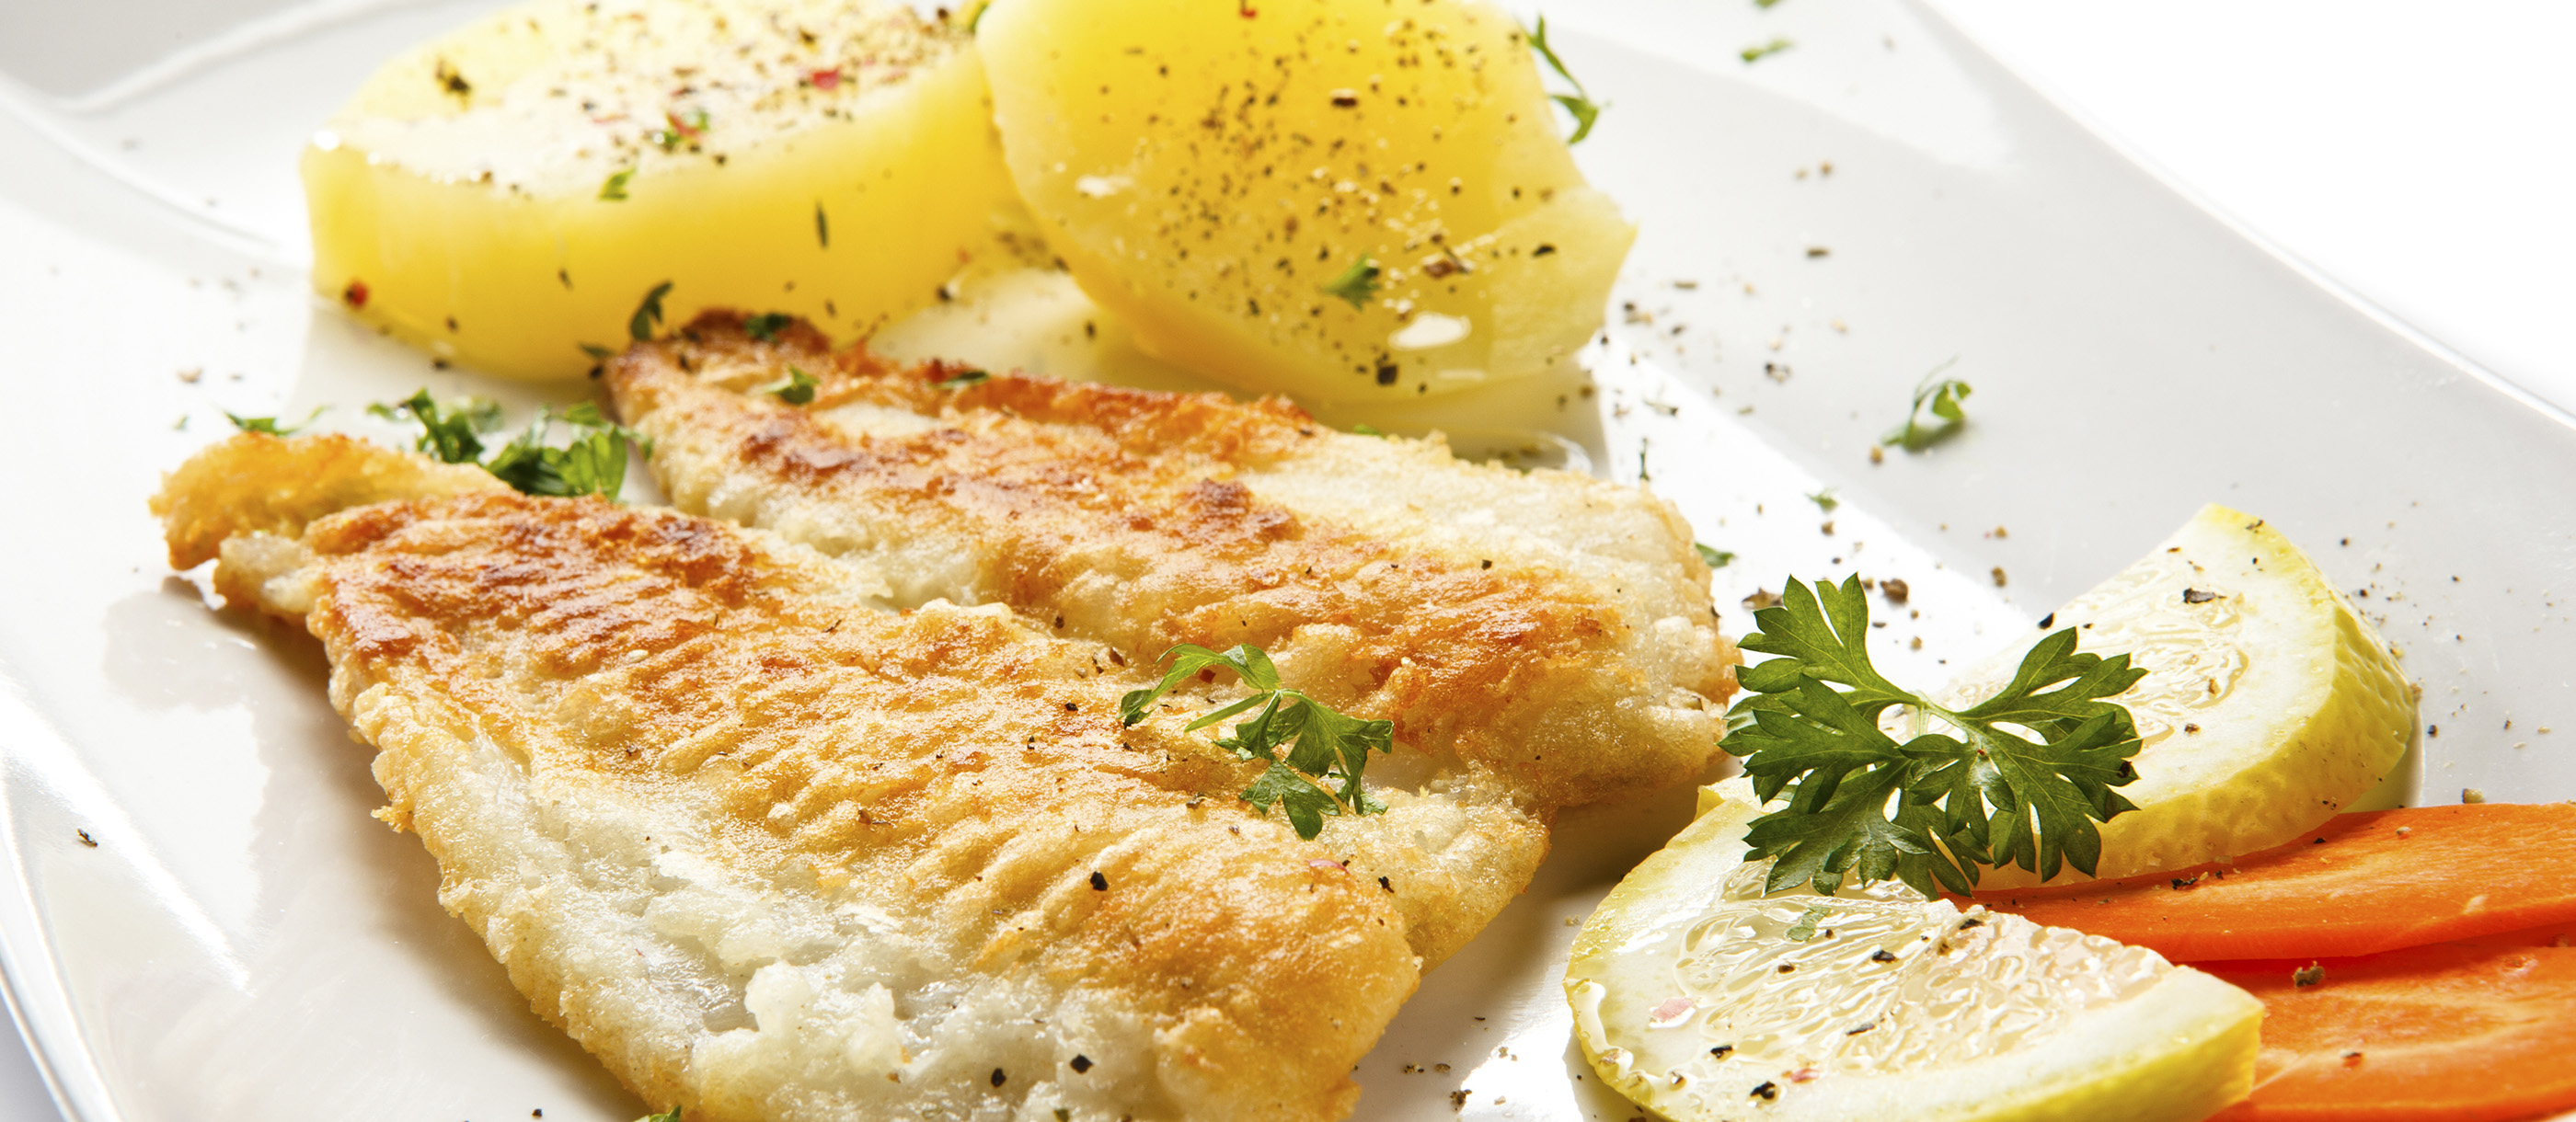 10 Most Popular French Fish Dishes - TasteAtlas